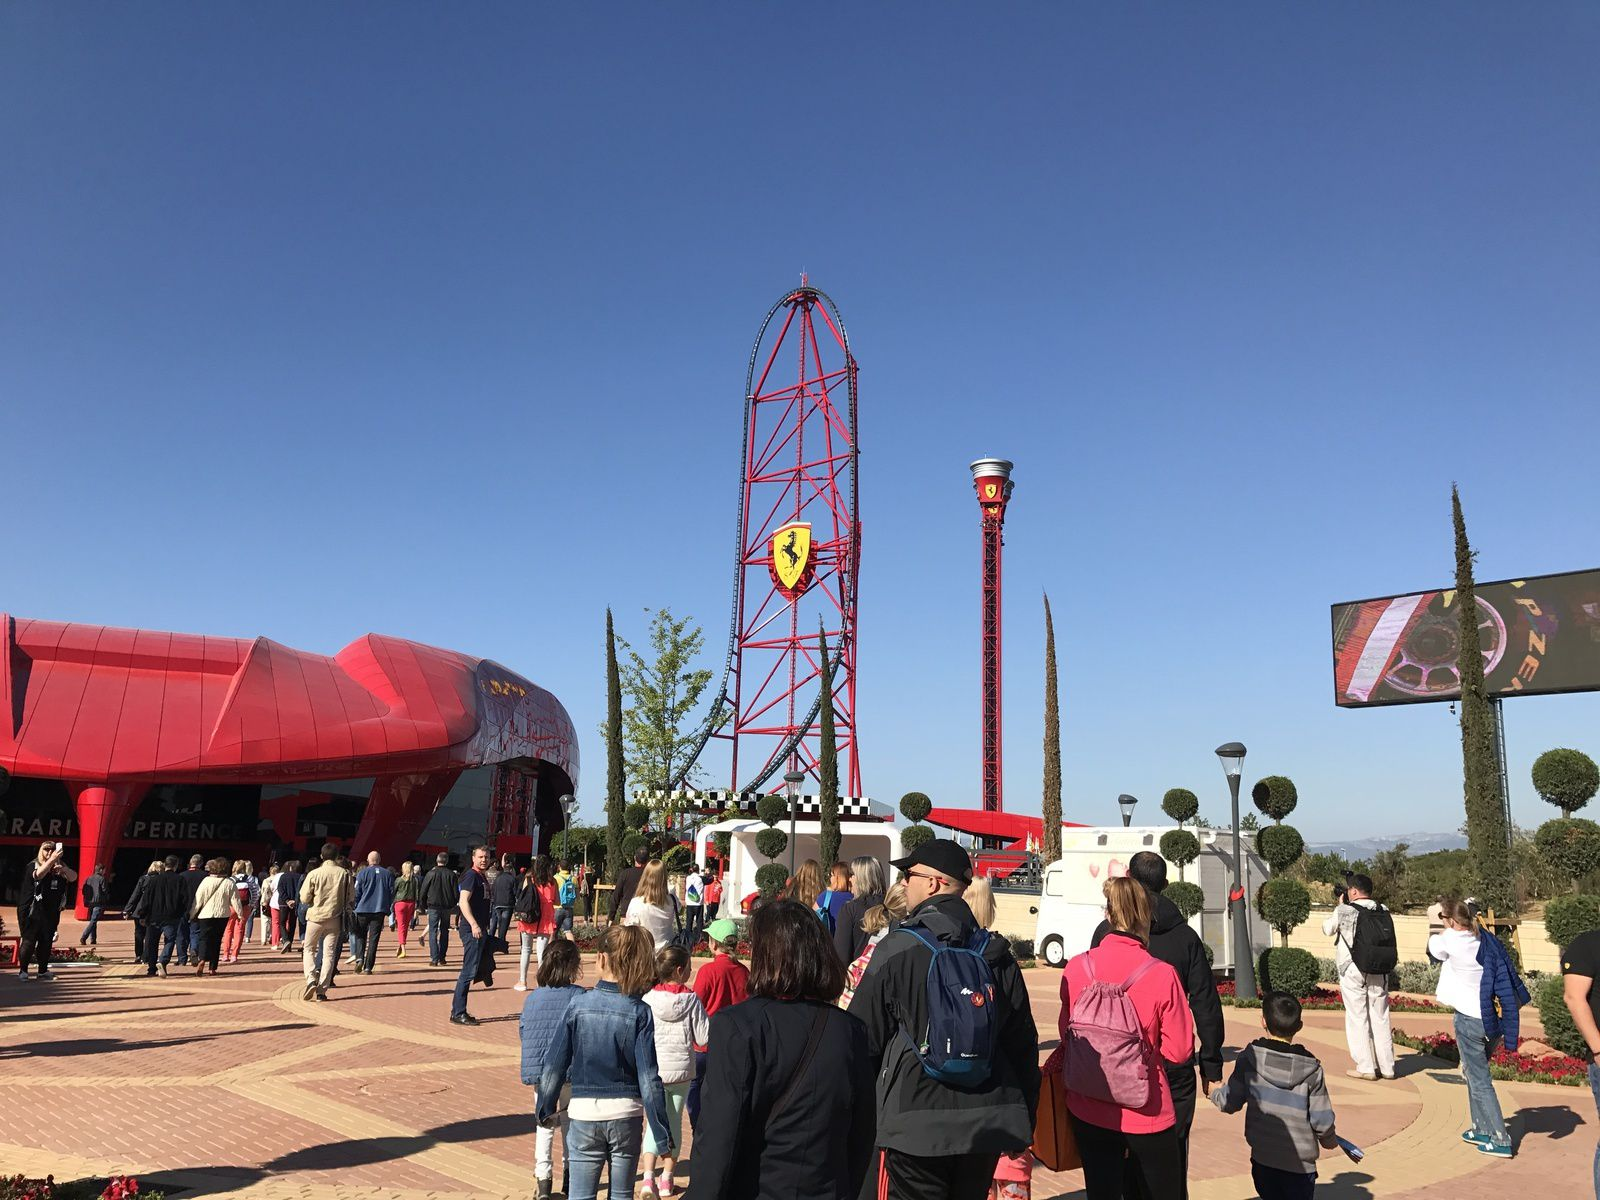 ALBUM PHOTO ET VIDEO DU VOYAGE ENFANTS A PORT AVENTURA ET FERRARI LAND 2017